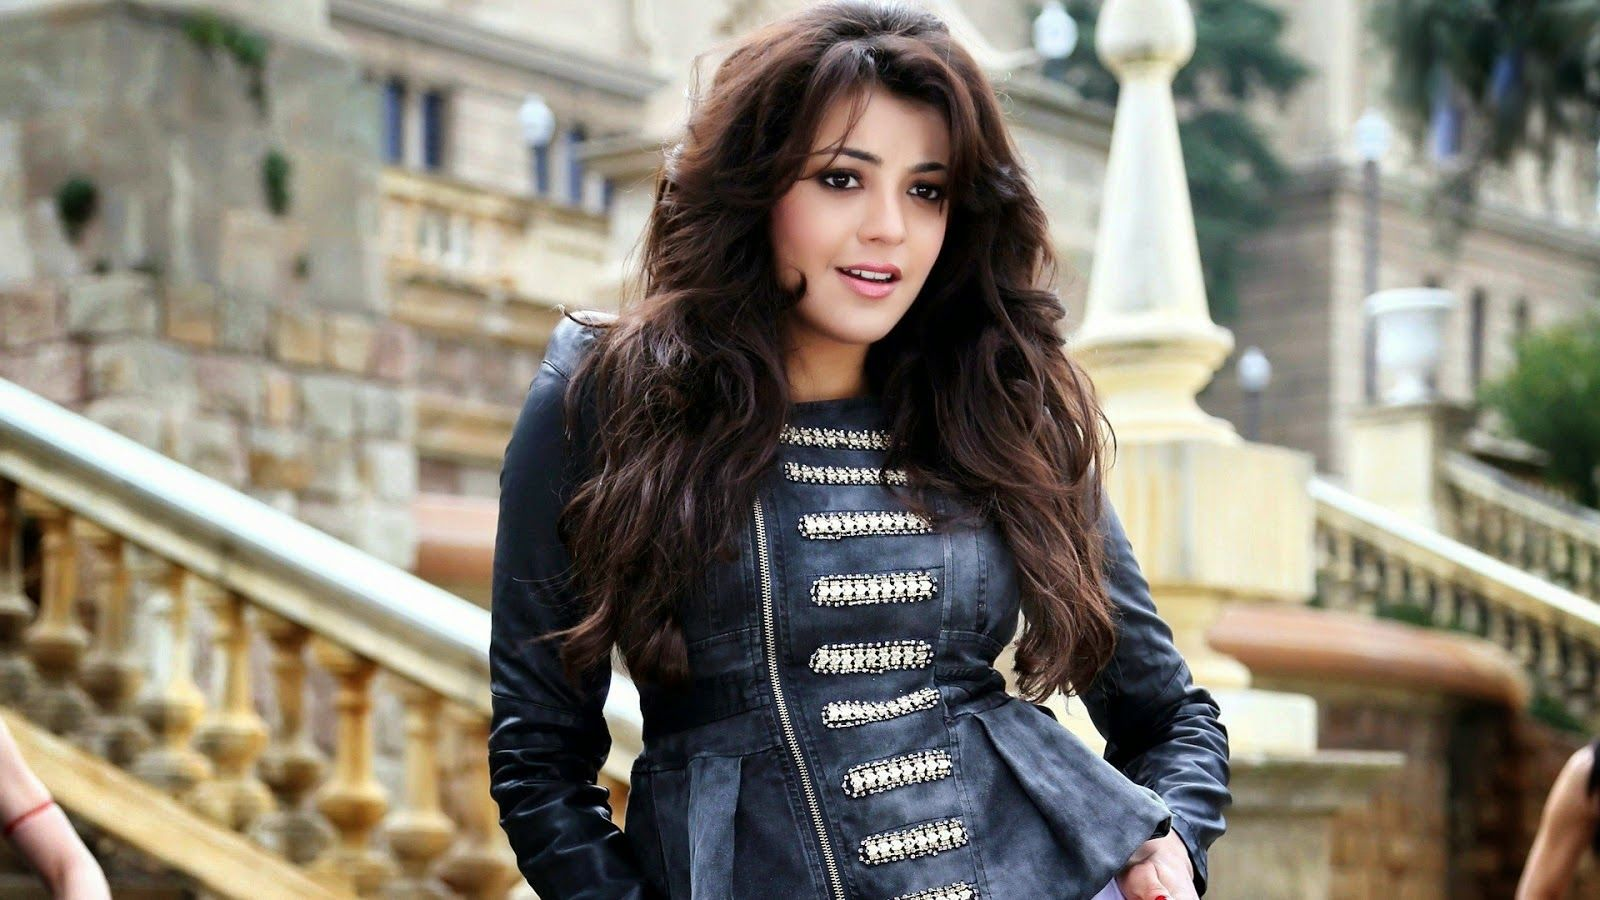 Wallpaper download kajal agarwal - Best Kajal Agarwal Beautiful Wallpapers Images Photos Free Download 1024 768 Kajal Images Download Wallpapers